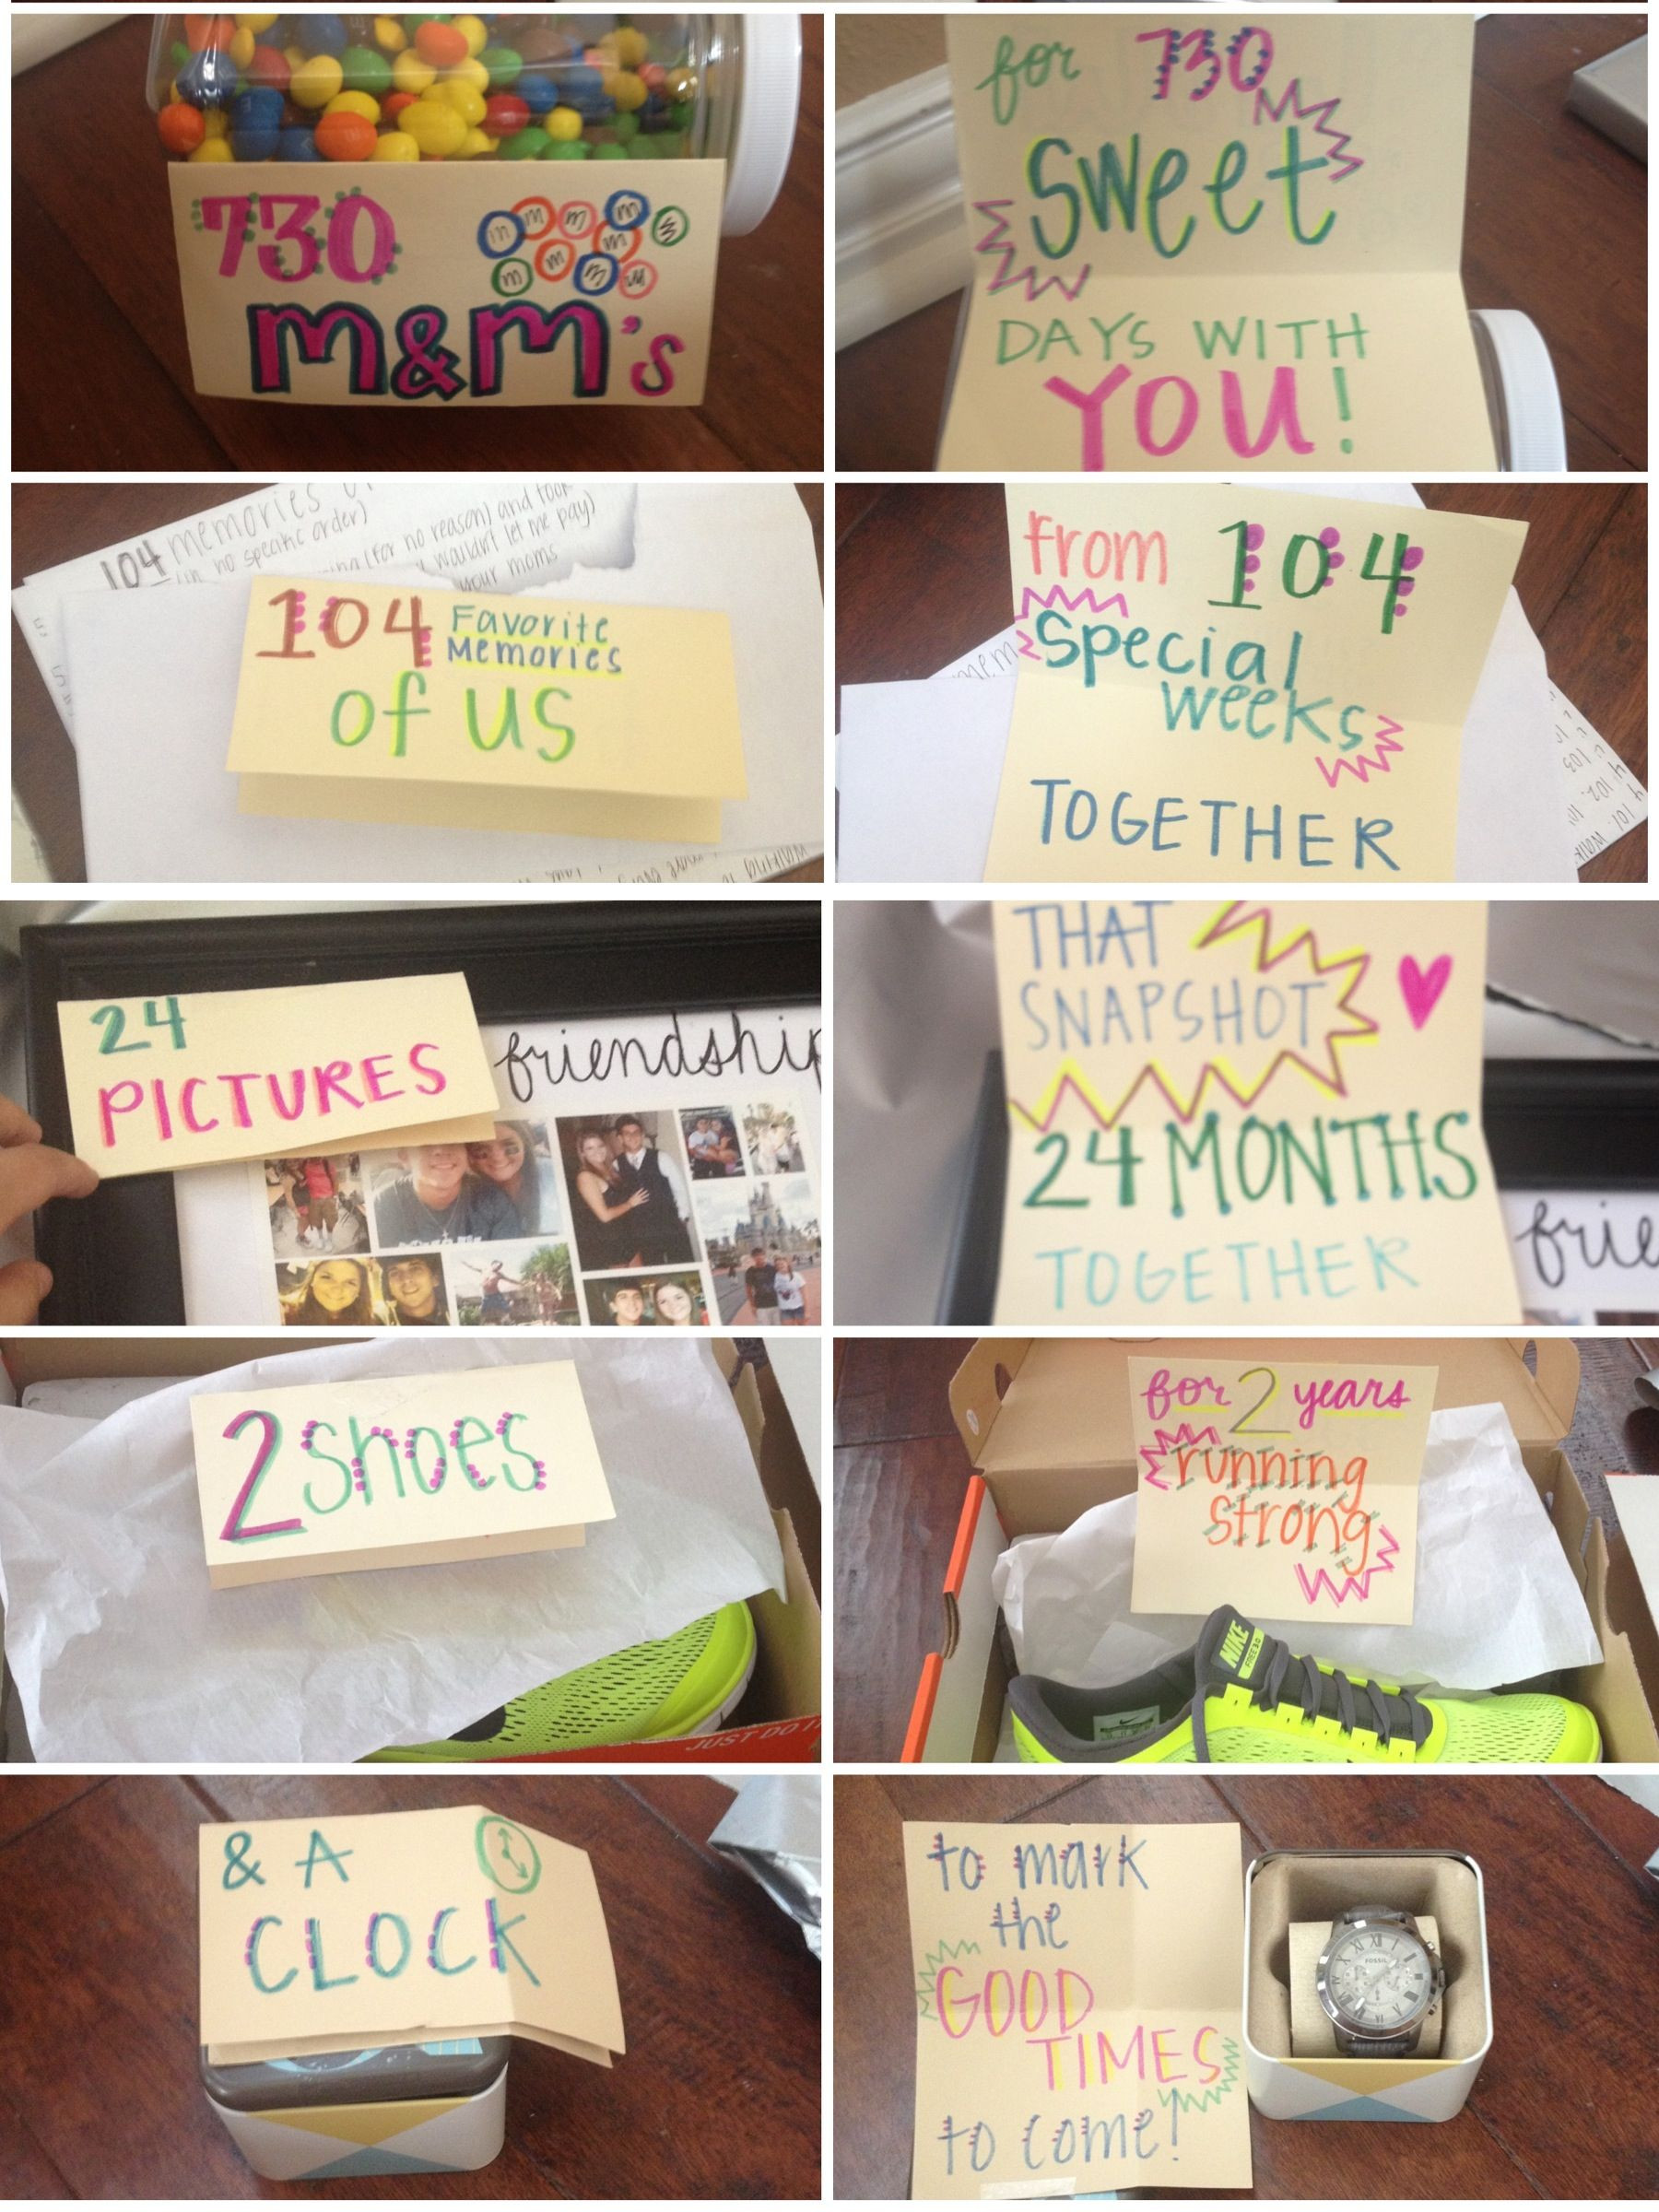 Cute Gift Ideas For Boyfriend Just Because  50 Just Because Gift Ideas For Him from The Dating Divas